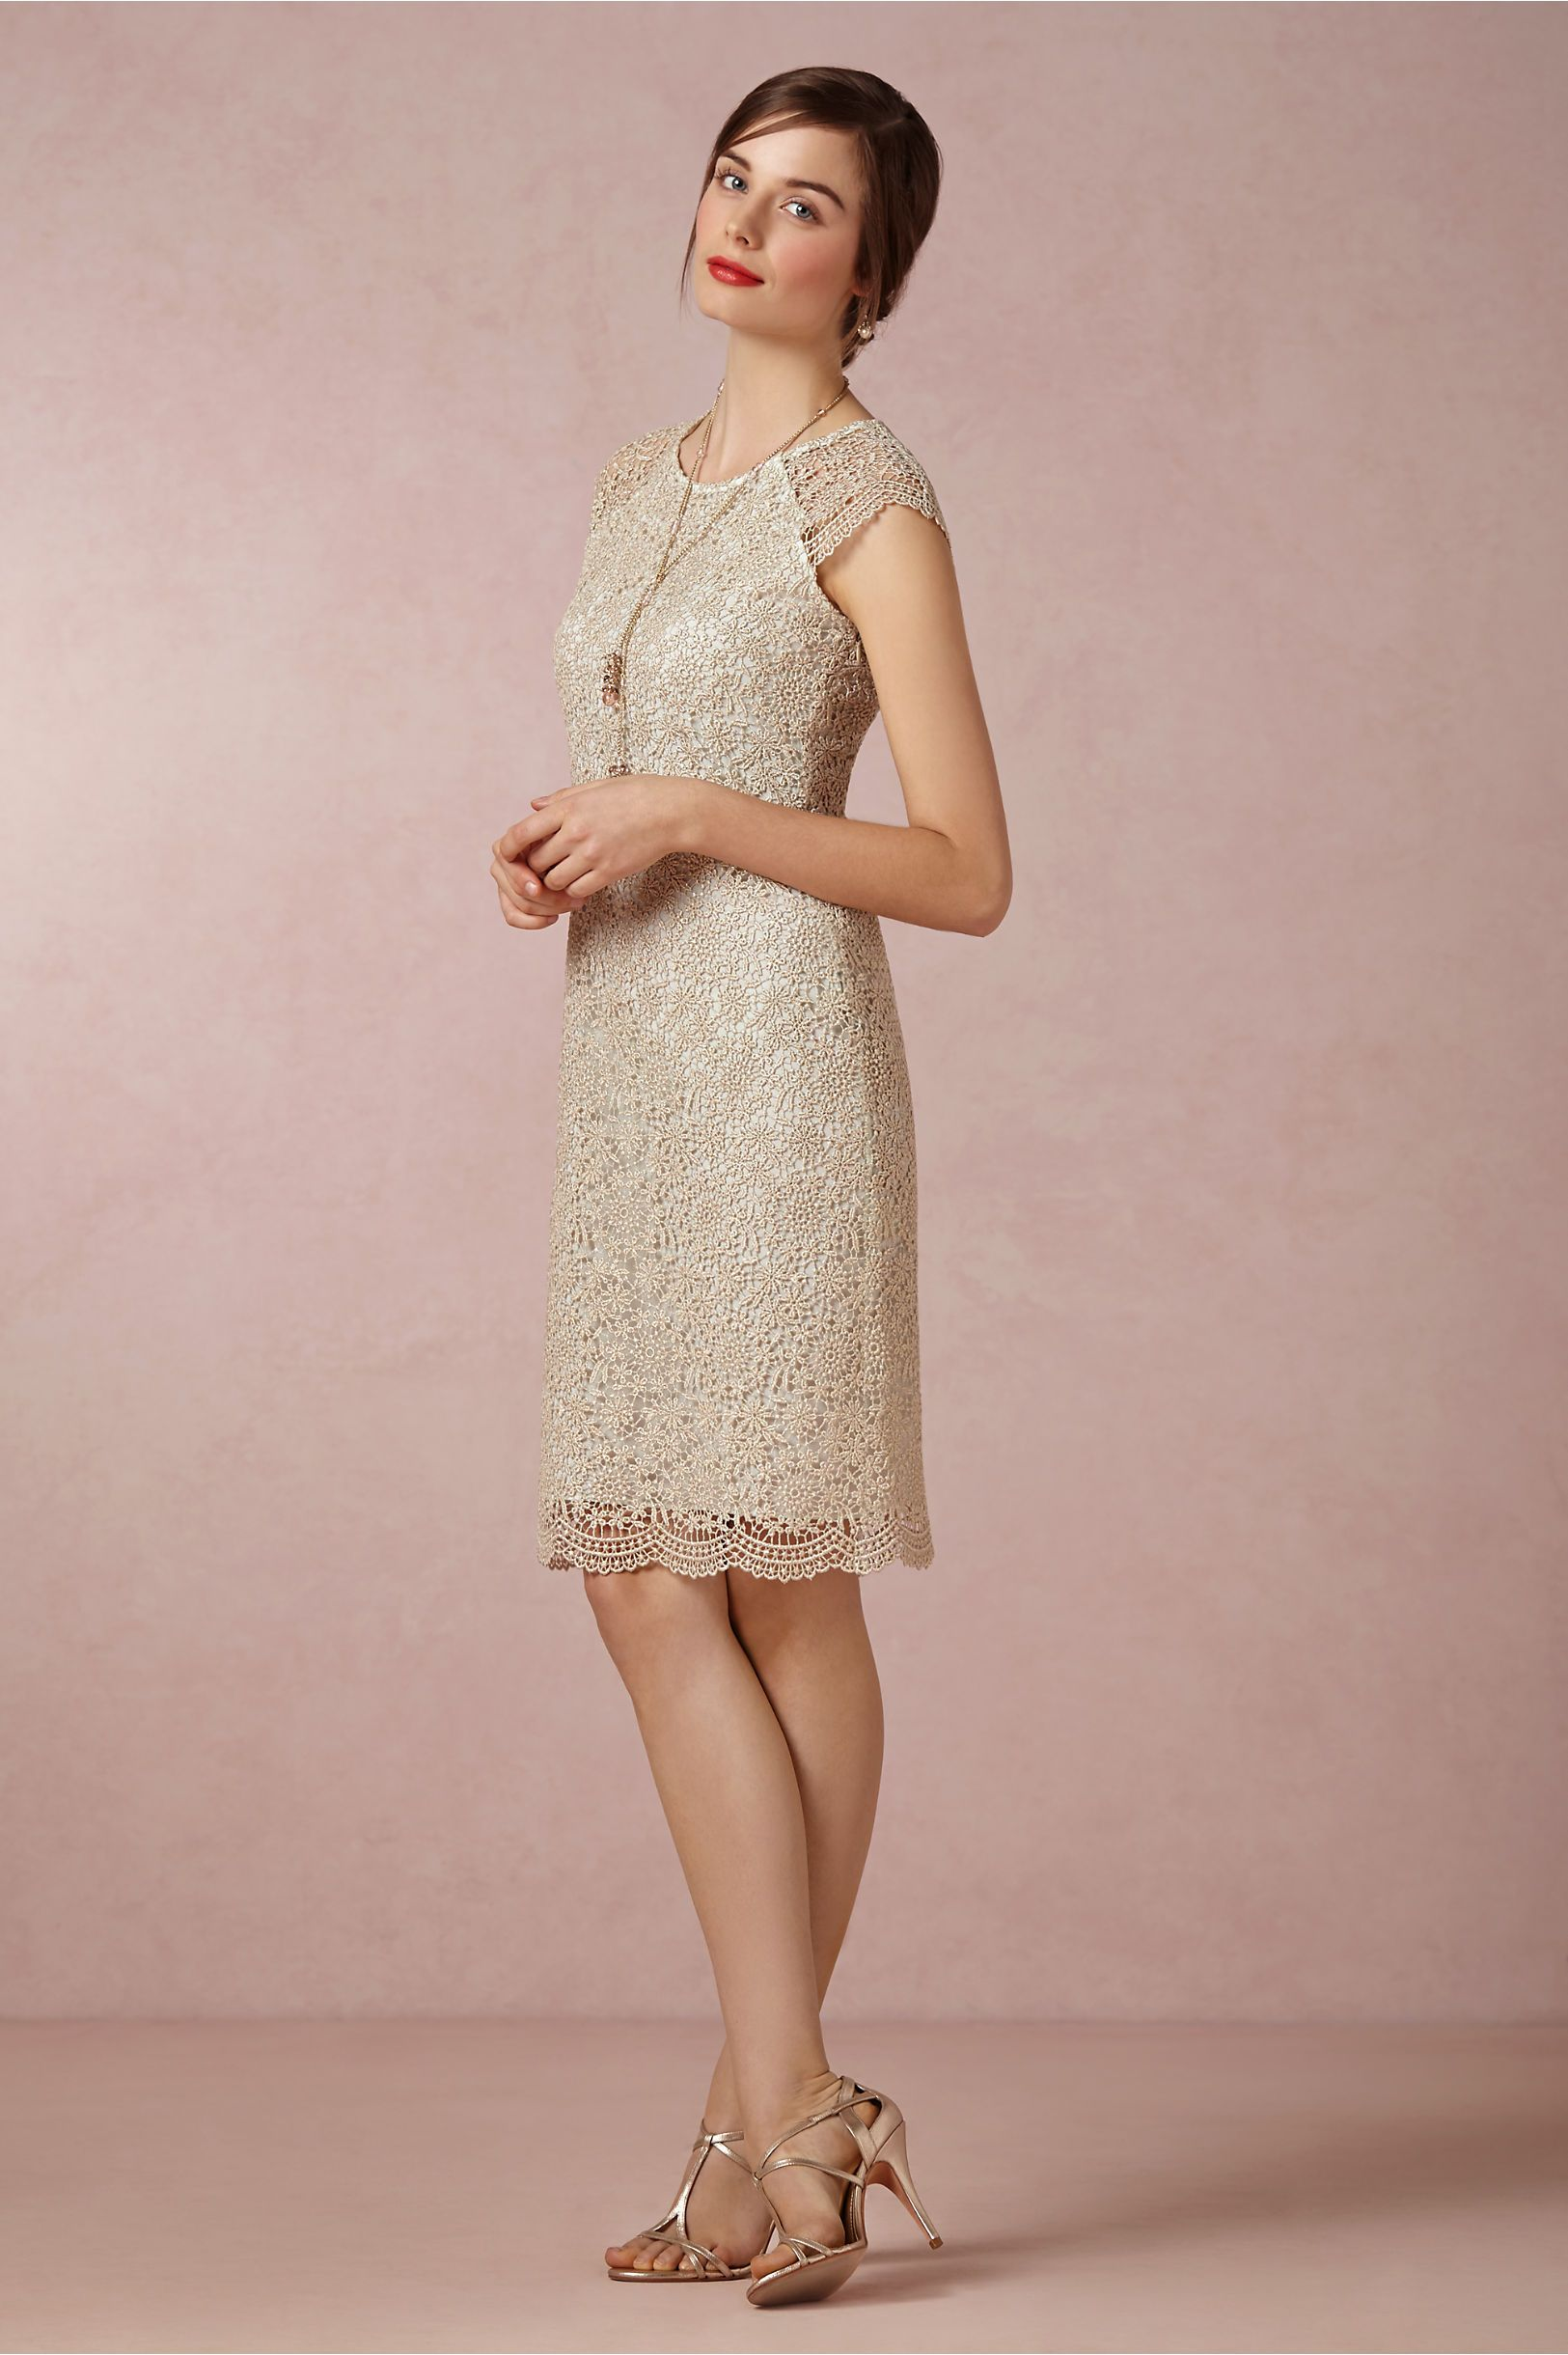 Shined Lace Shift In Bridal Party Guests Bridesmaids Dresses At Bhldn Without Mint Like The Silo